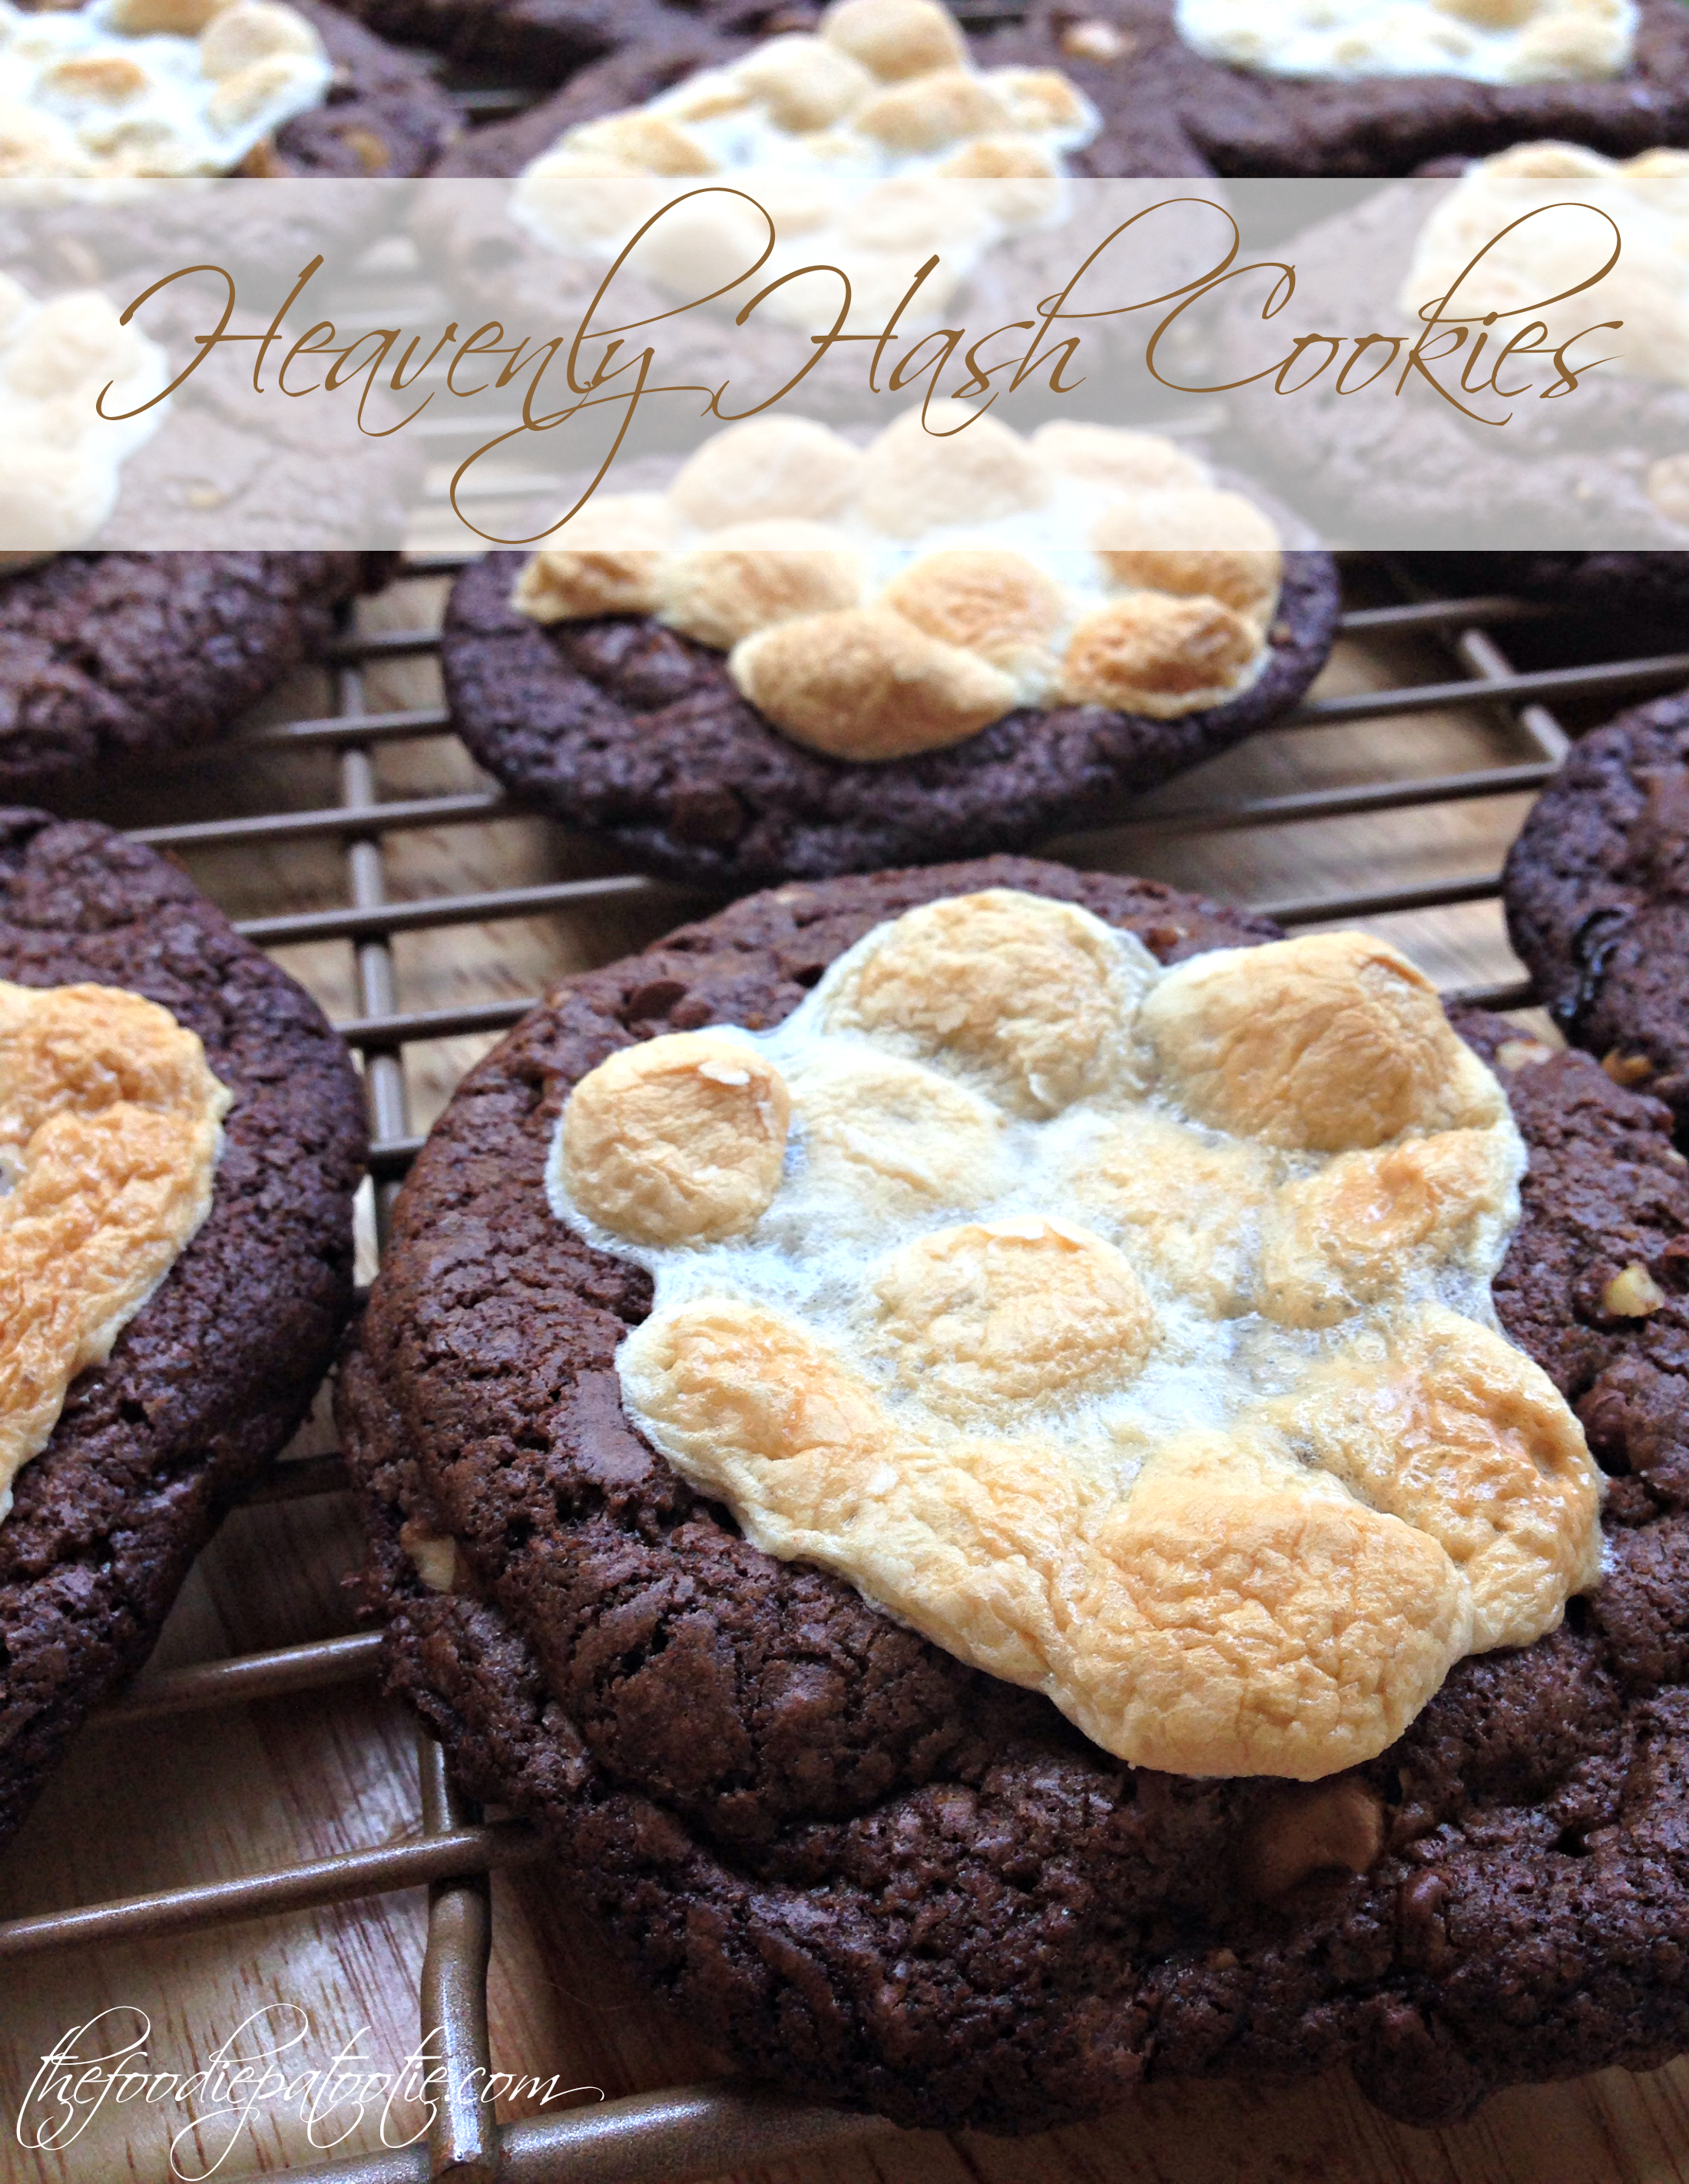 National Heavenly Hash Day Cookies For Sundaysupper Via Dessert Recipe Foodholiday Foodcalendar